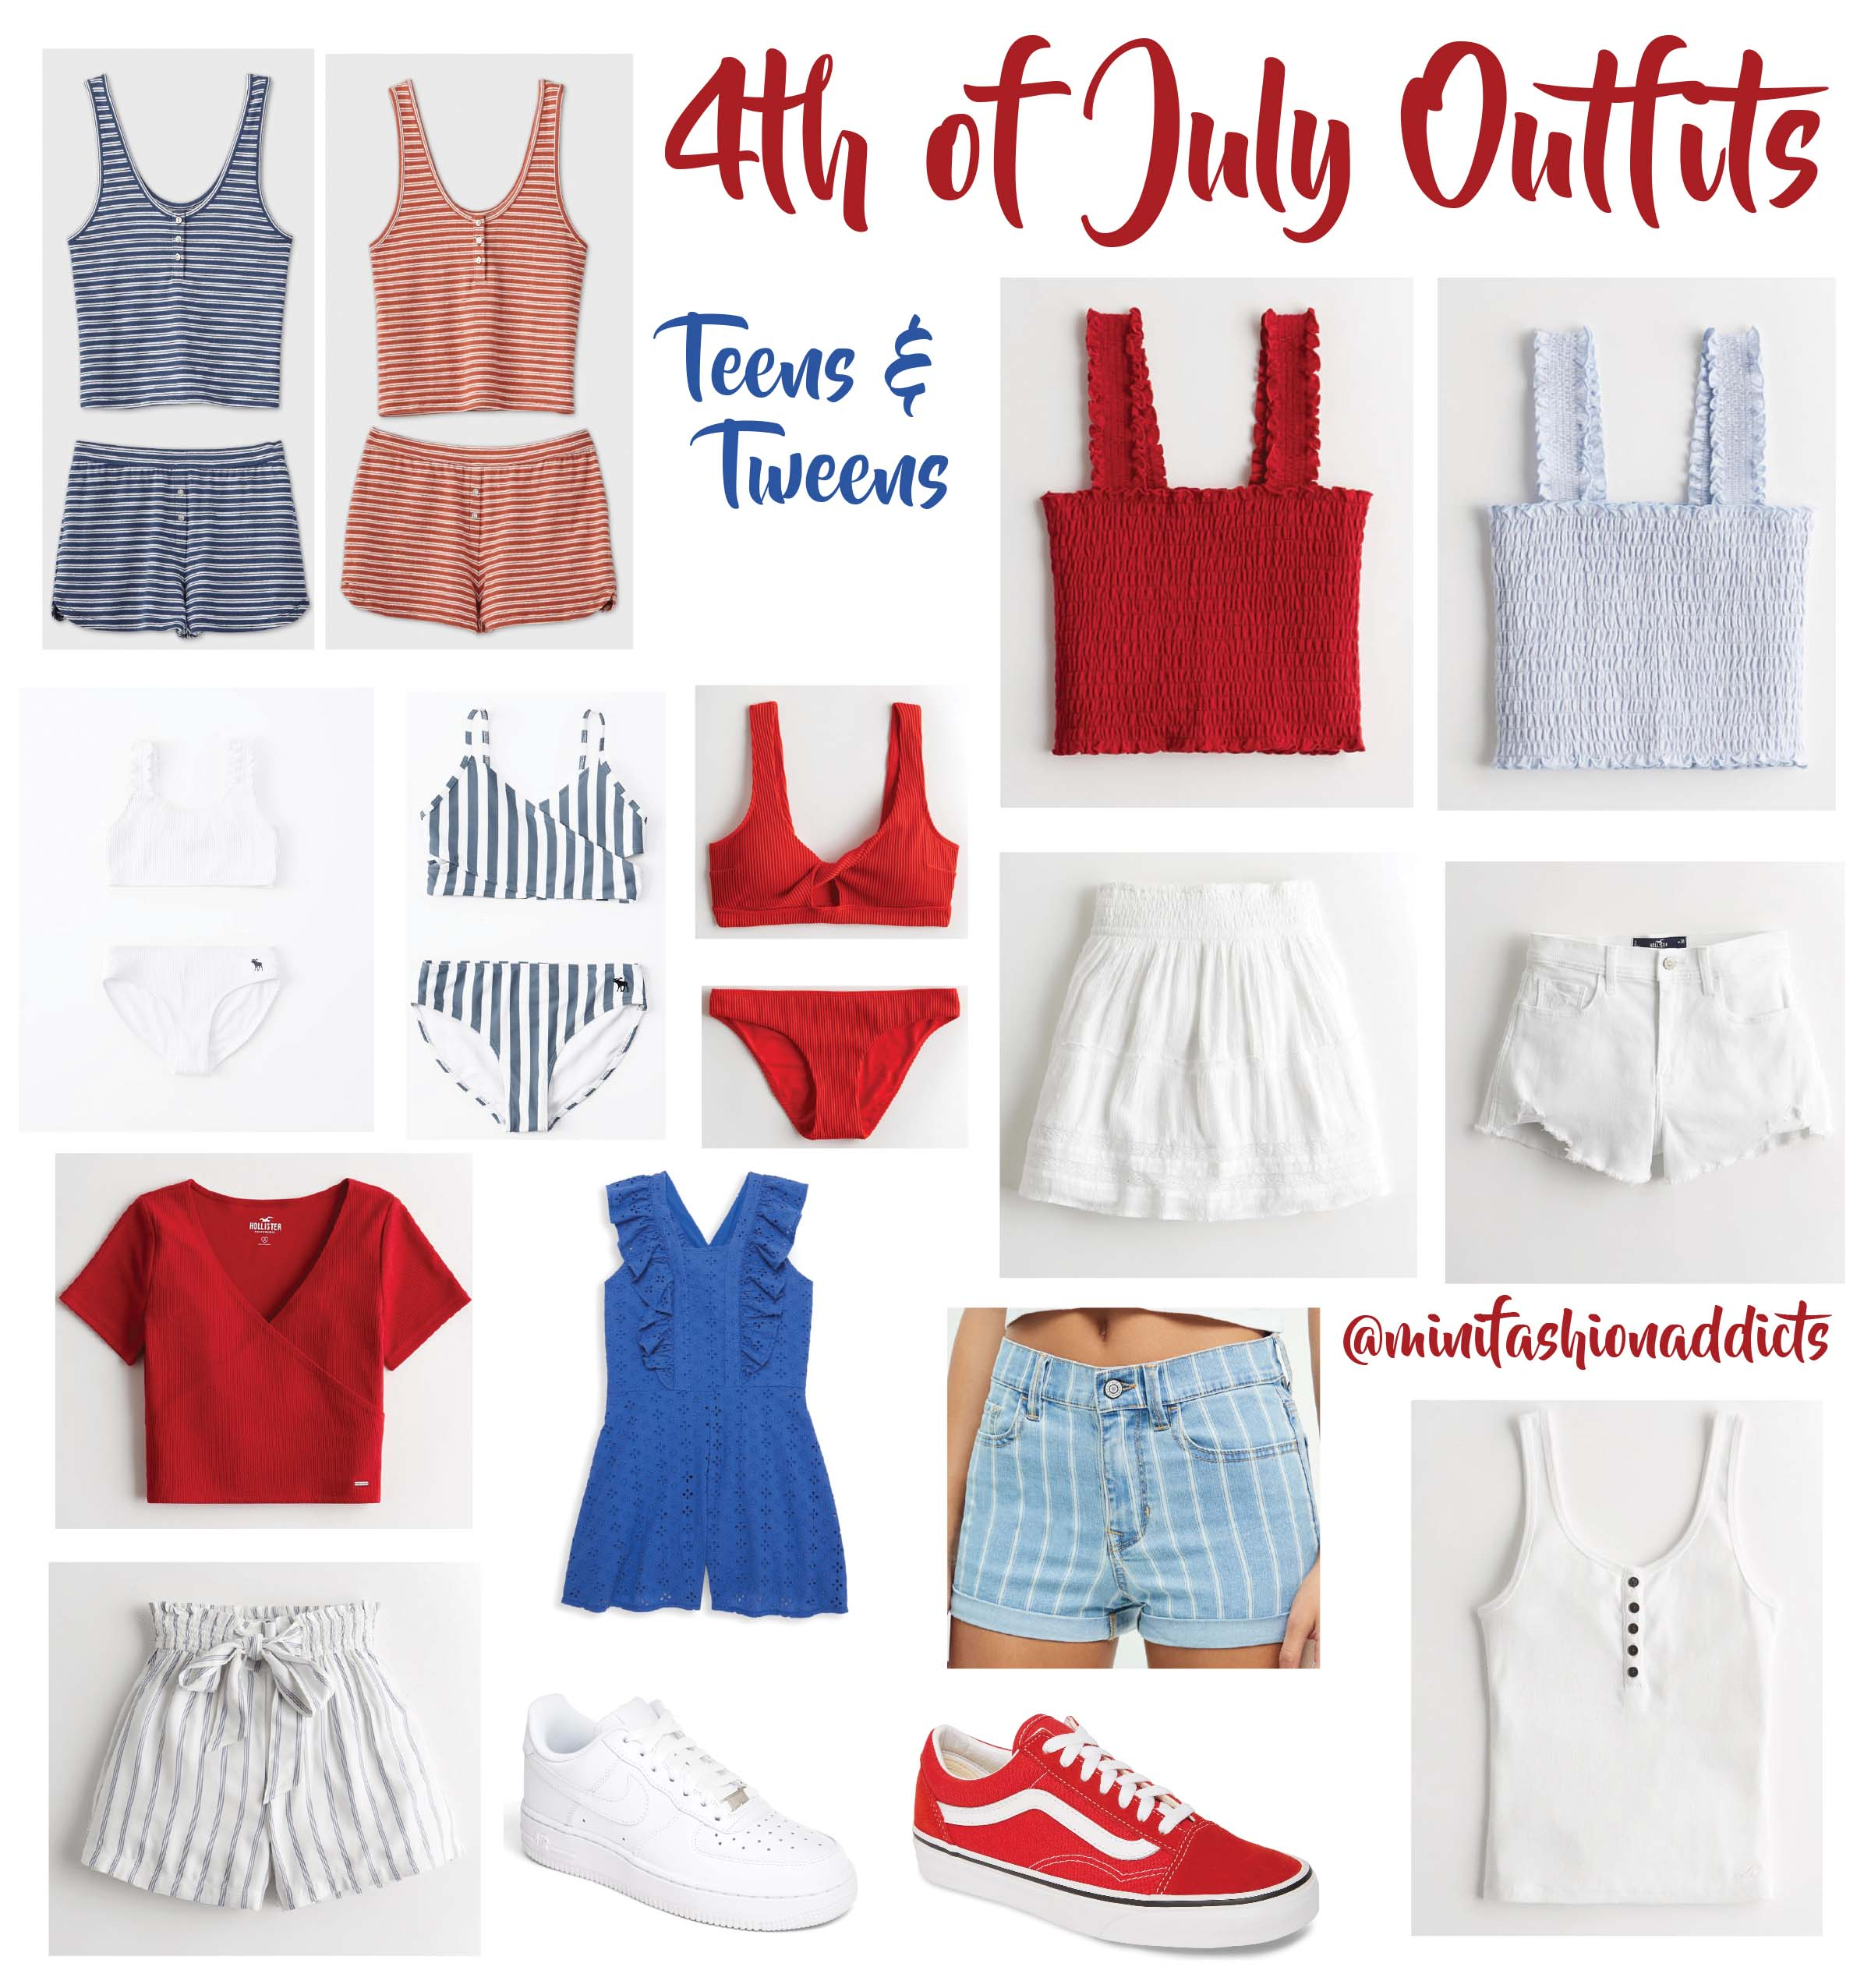 4th of July Outfits Teens & Tweens